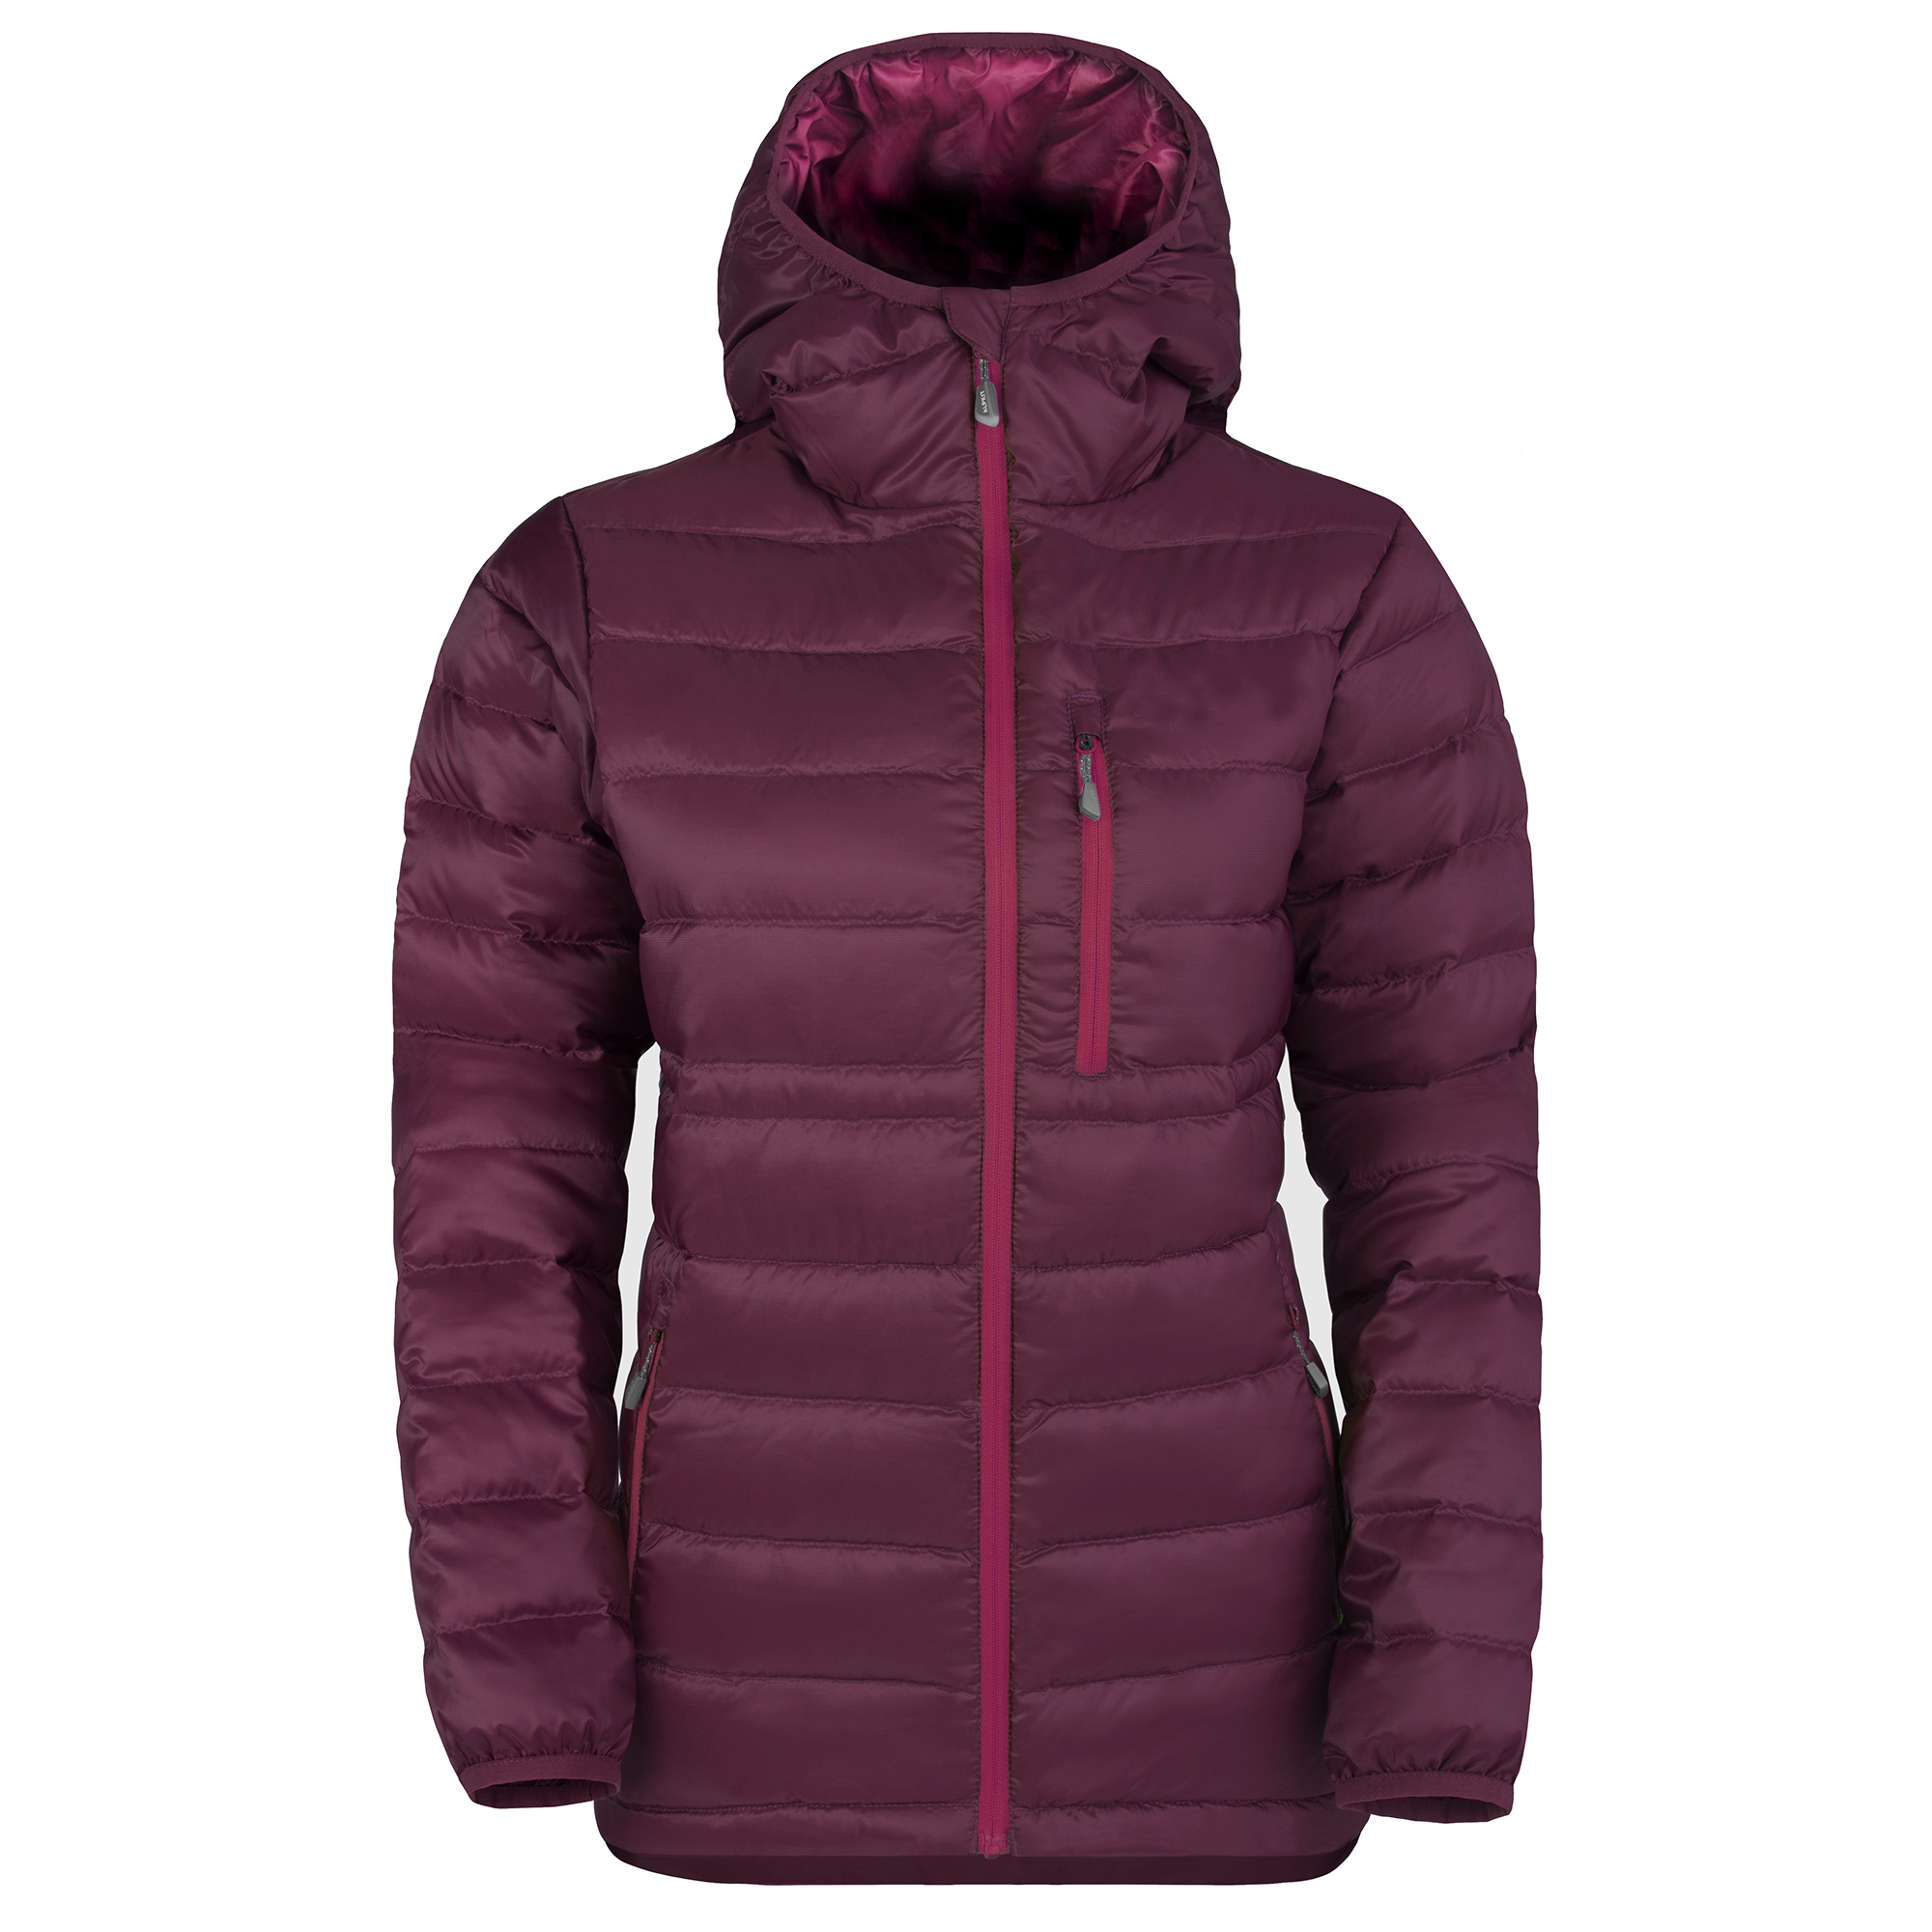 Filoment women hydrophobic hooded down jacket